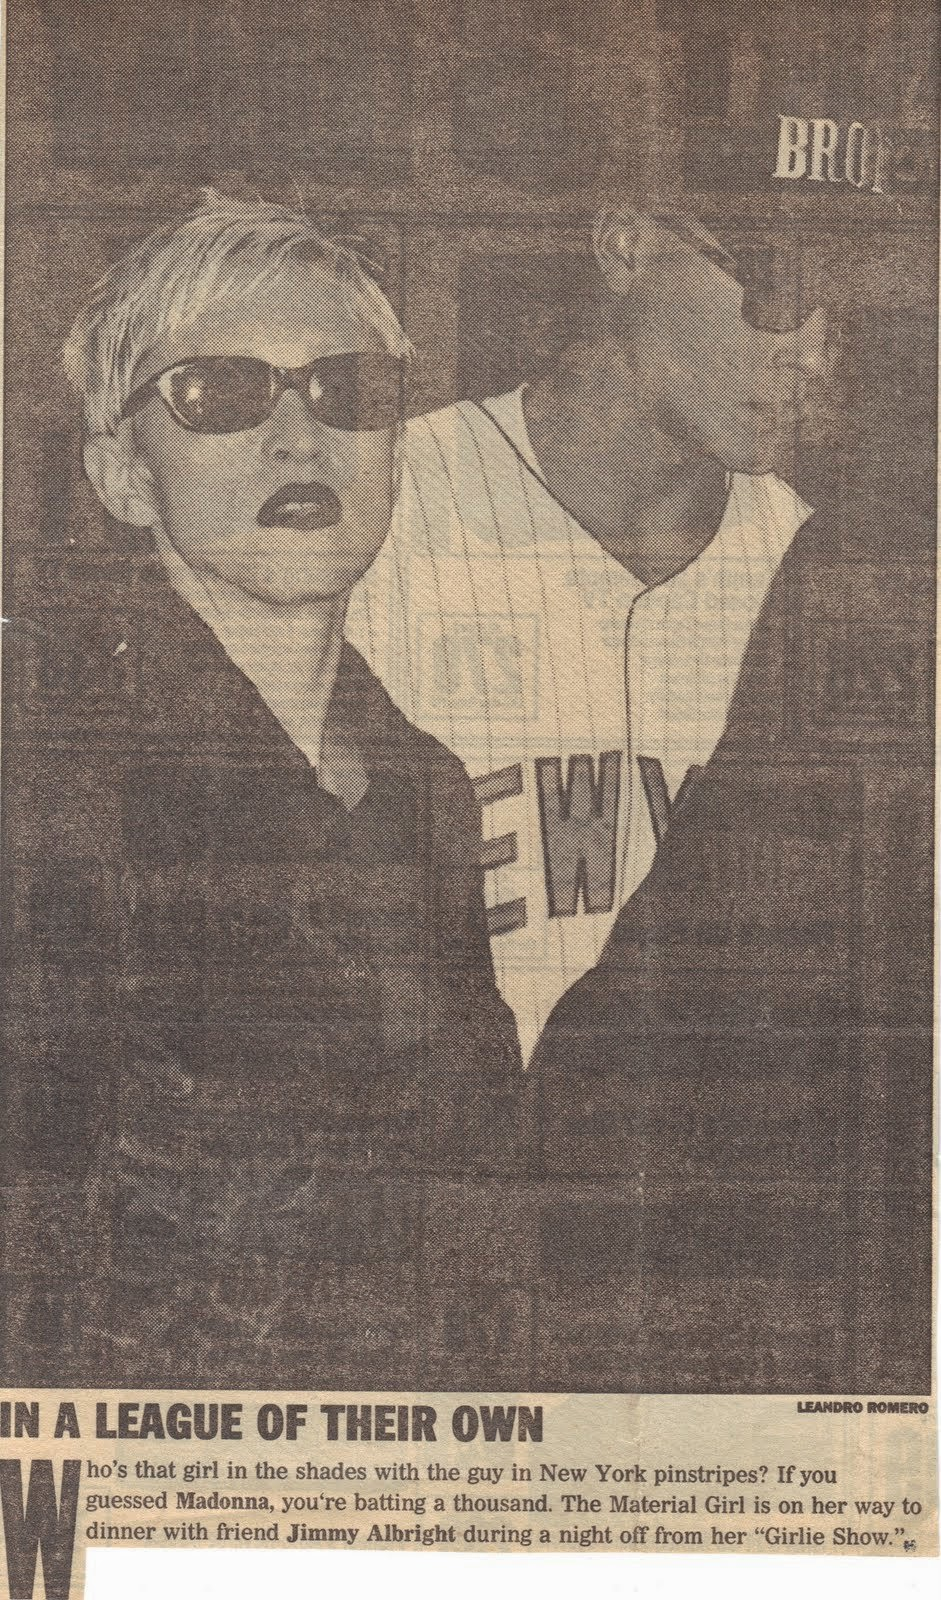 Madonna+and+Jimmy+Albright+1993.jpg